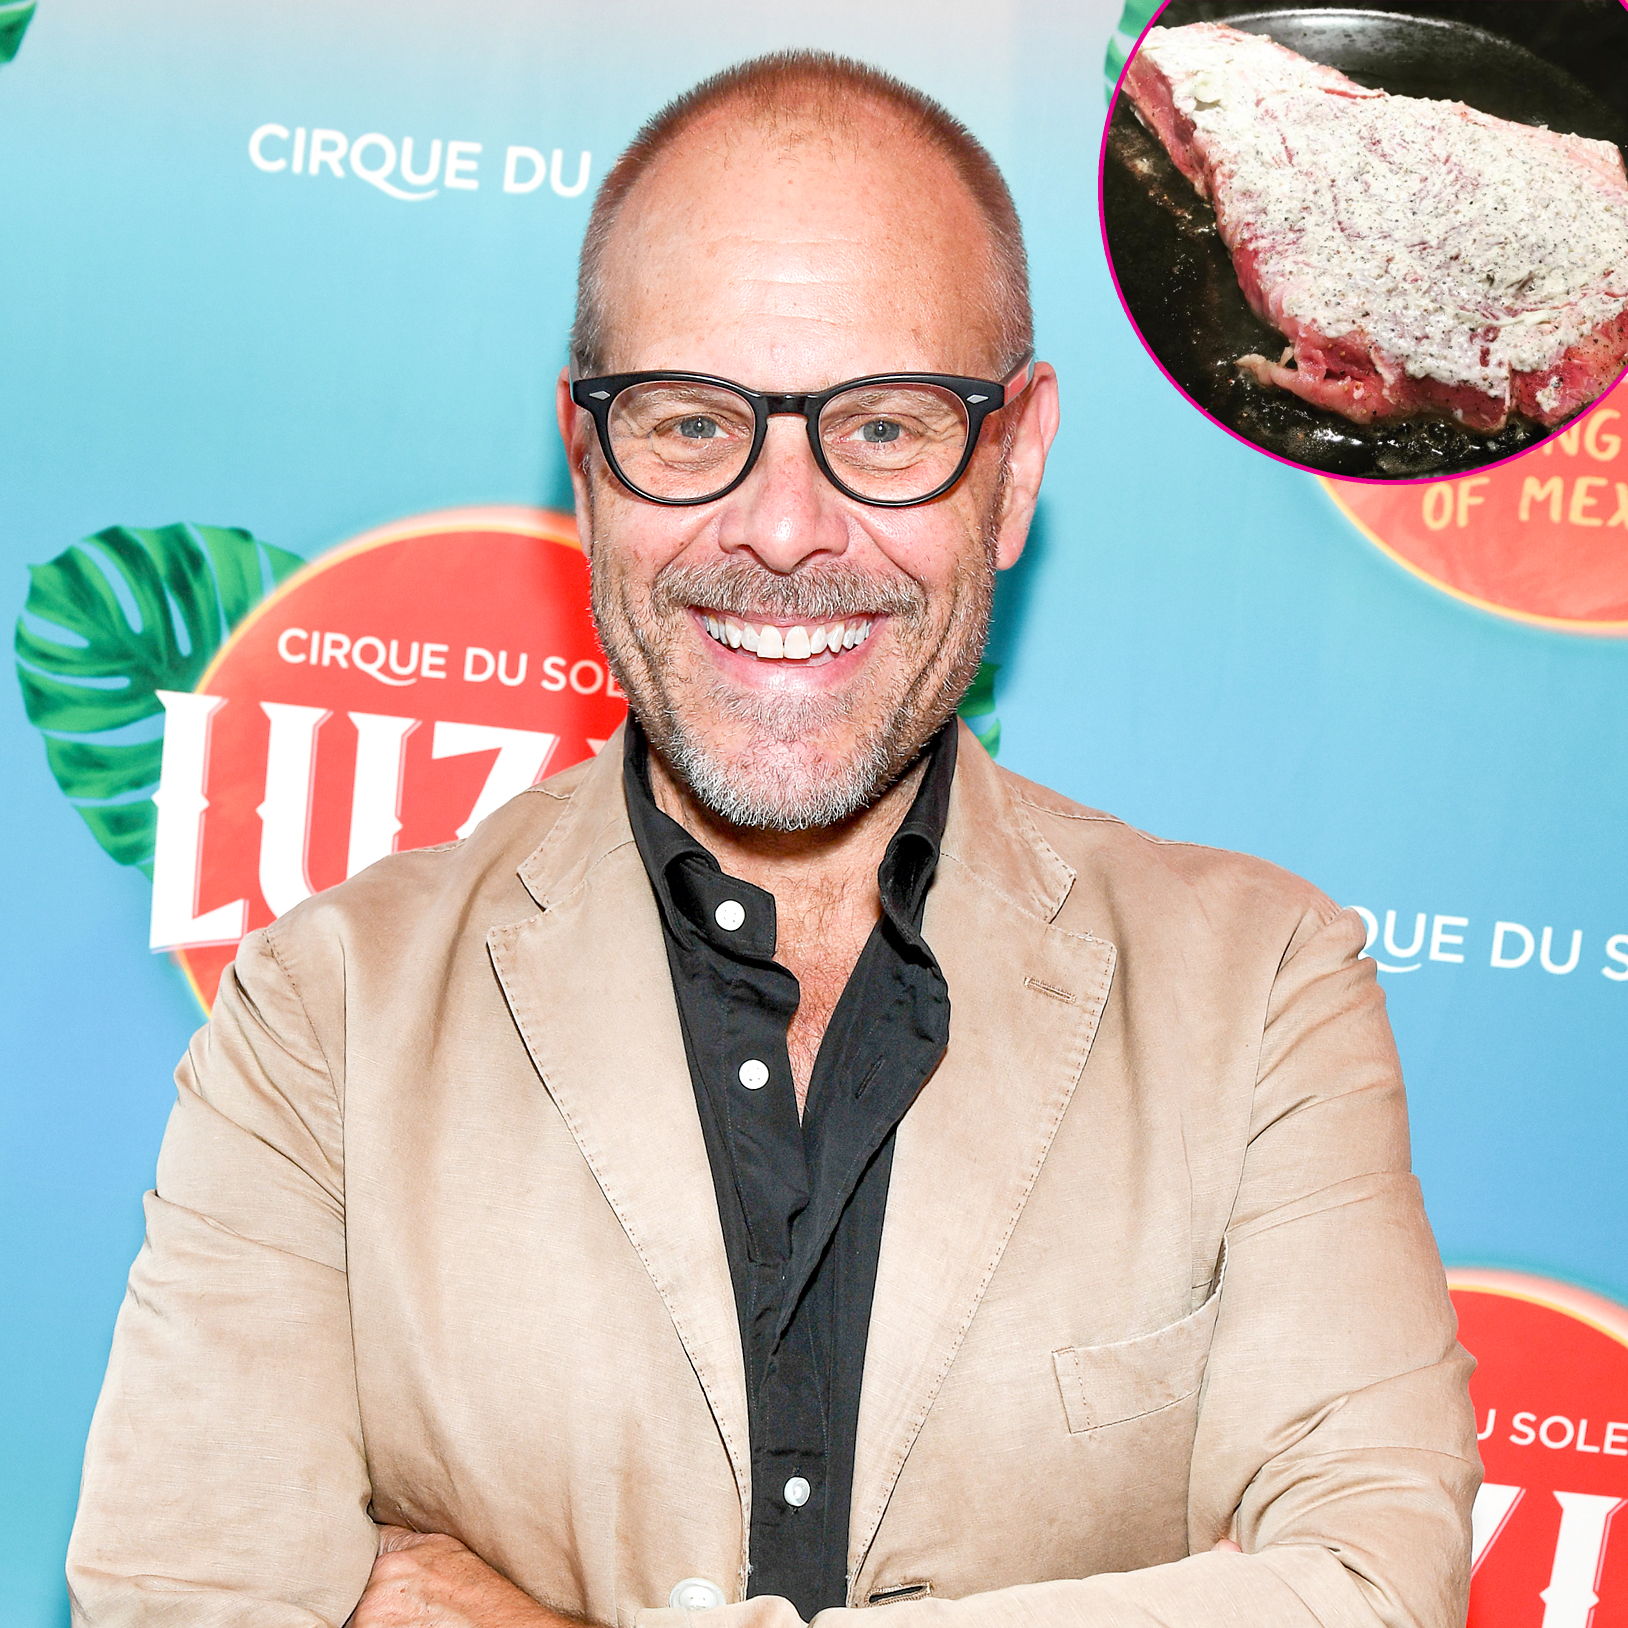 Alton-Brown's-Mayonnaise-Steak - If there's a king of kooky cooking tips, it's the Good Eats host. In September 2018, he revealed via Instagram that he slathers a steak in mayonnaise before cooking it.